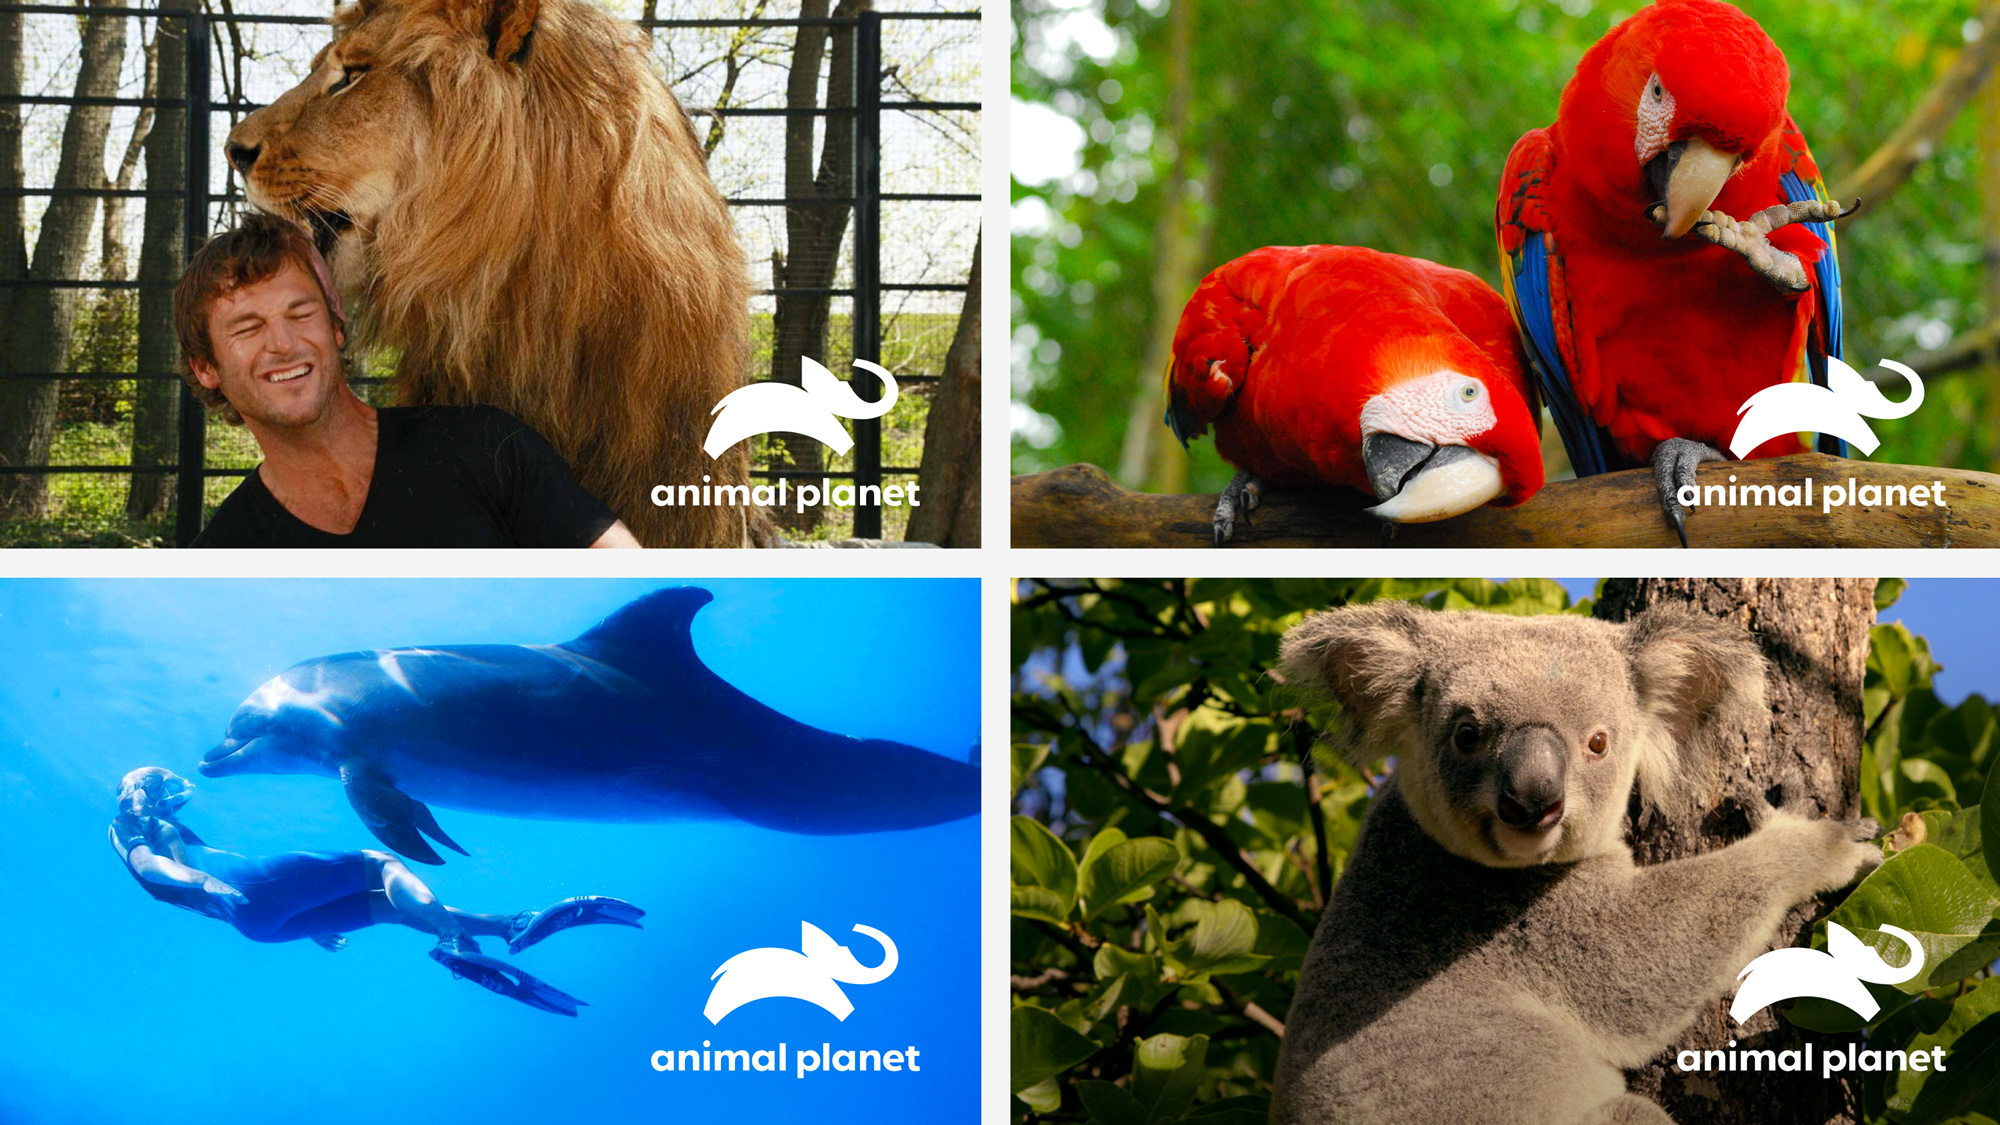 Animal Planet Brand New New Logo For Animal Planet By Chermayeff